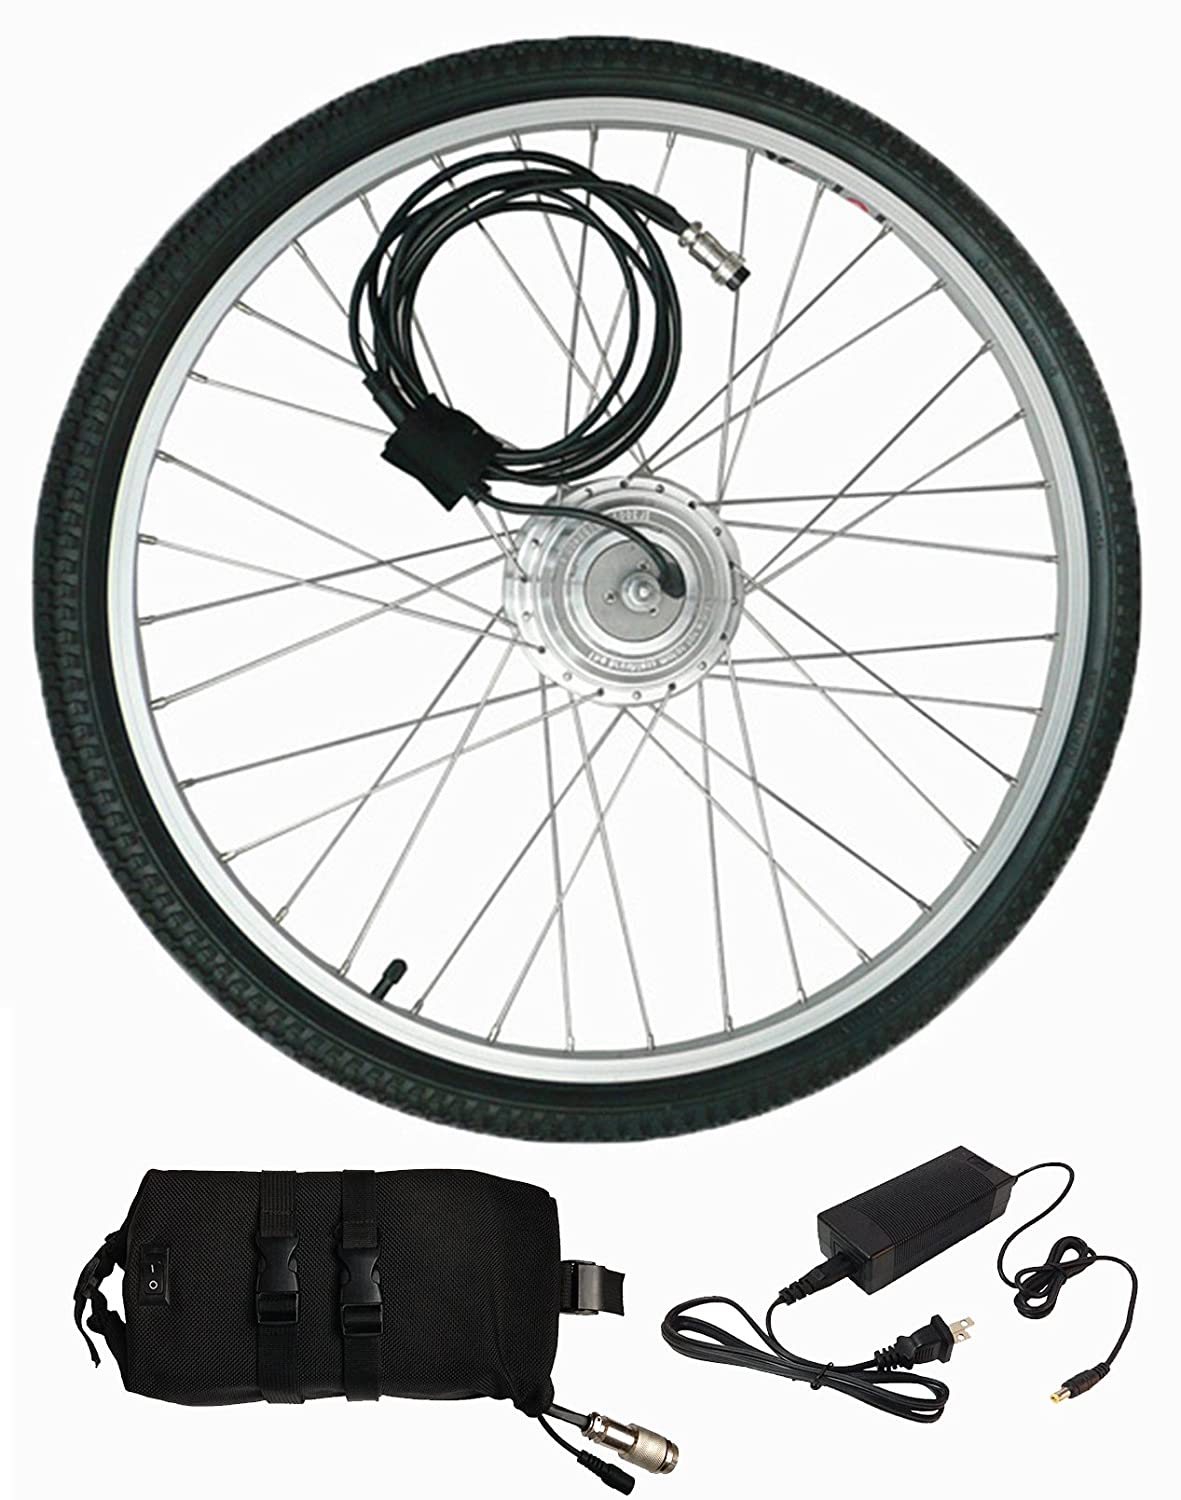 71NnddUjJPL._SL1500_ amazon com 36v350w hub motor electric bike conversion kit lcd  at aneh.co